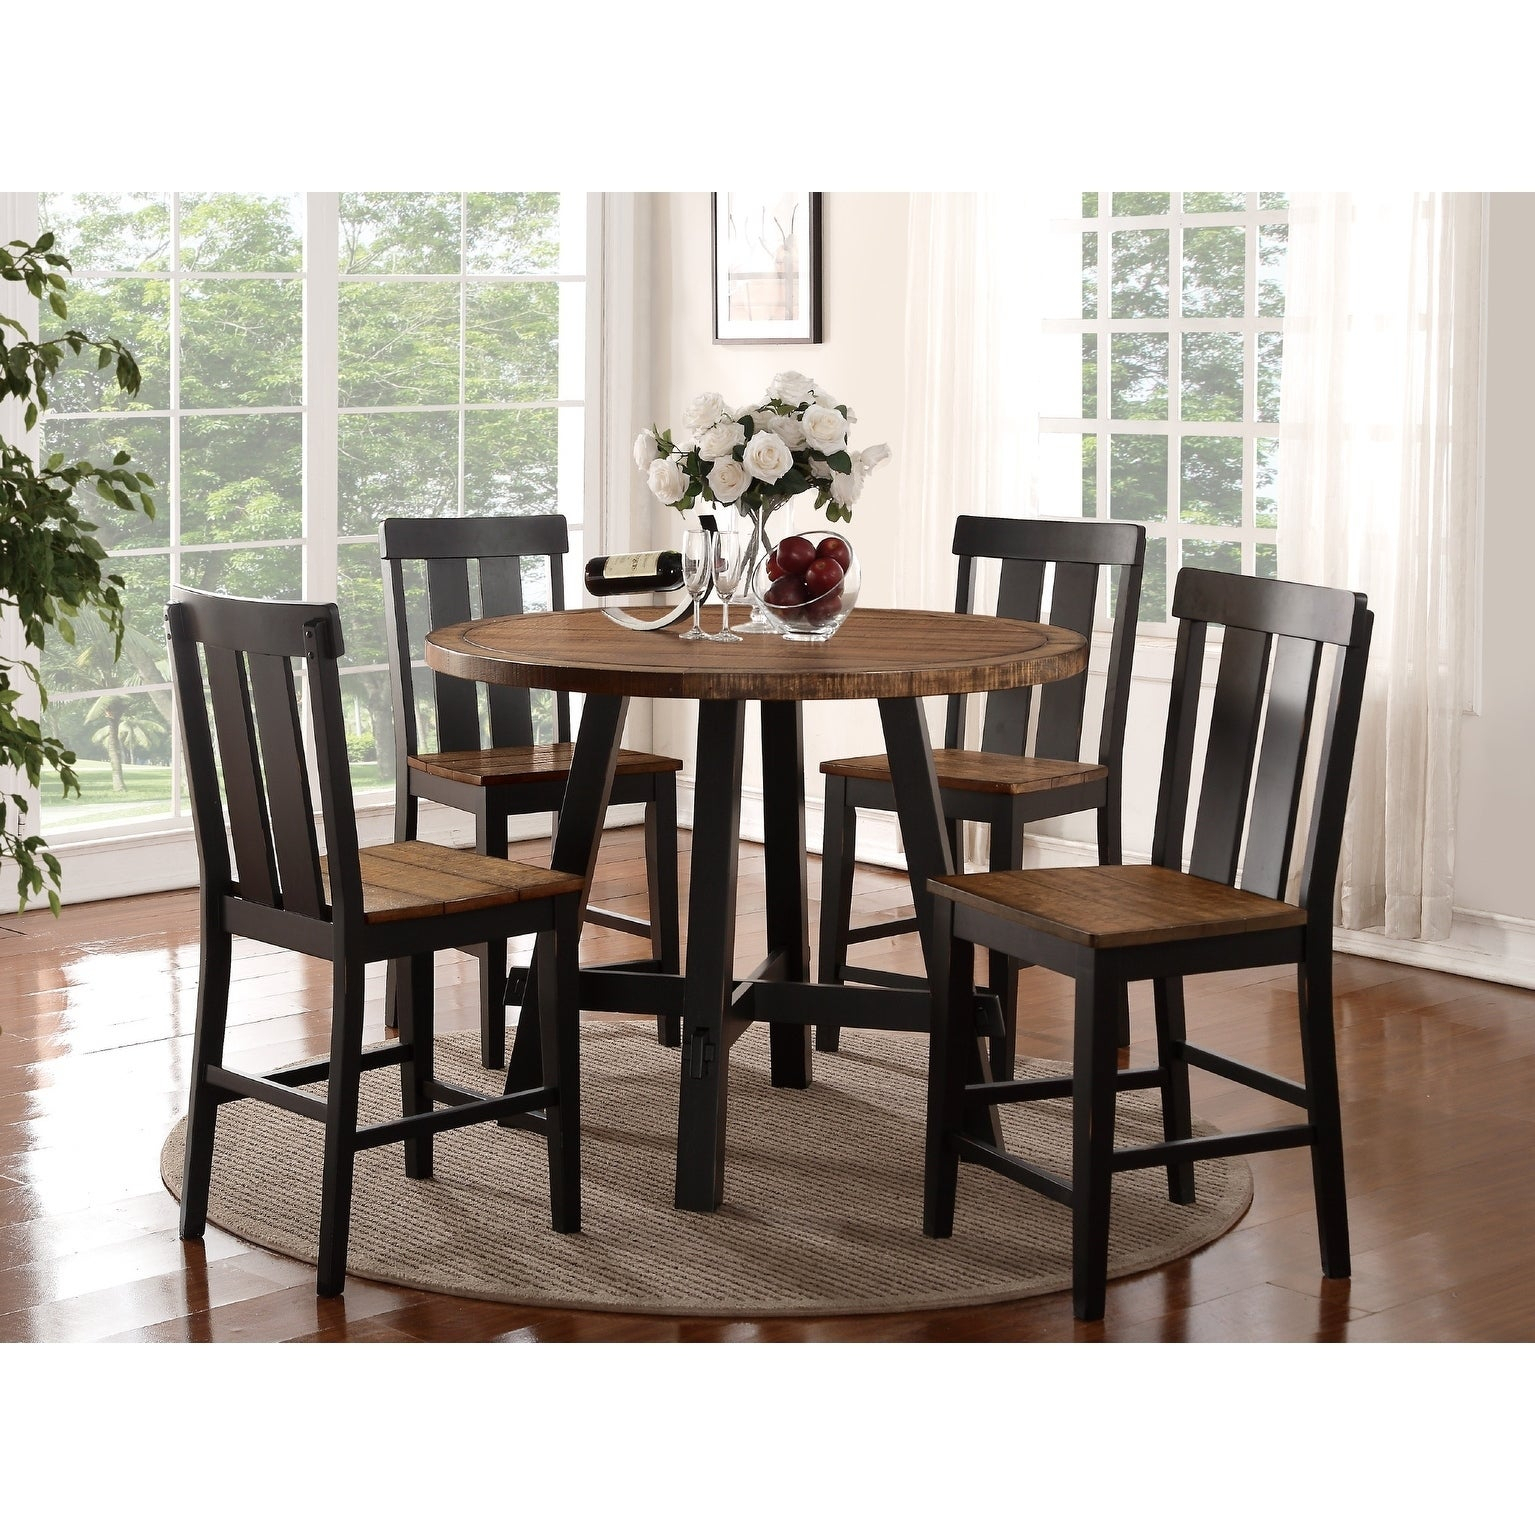 Shop Goodman 5 Piece Counter Height Dining Set – Free Shipping Today Throughout Newest Goodman 5 Piece Solid Wood Dining Sets (Set Of 5) (View 15 of 20)